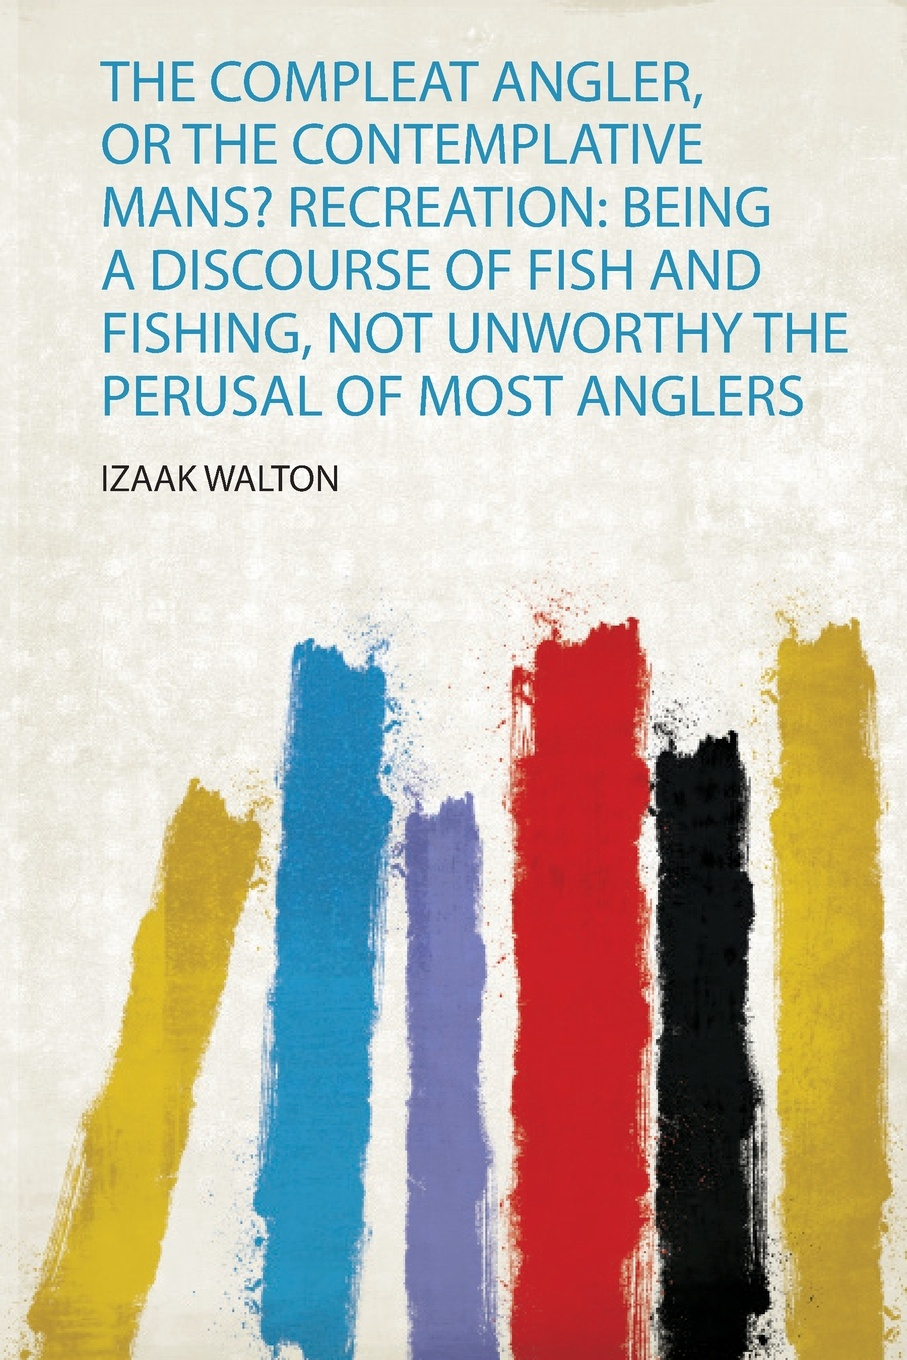 Izaak Walton The Compleat Angler, or the Contemplative Mans? Recreation. Being a Discourse of Fish and Fishing, Not Unworthy the Perusal of Most Anglers walton izaak the compleat angler or the contemplative man s recreation being a